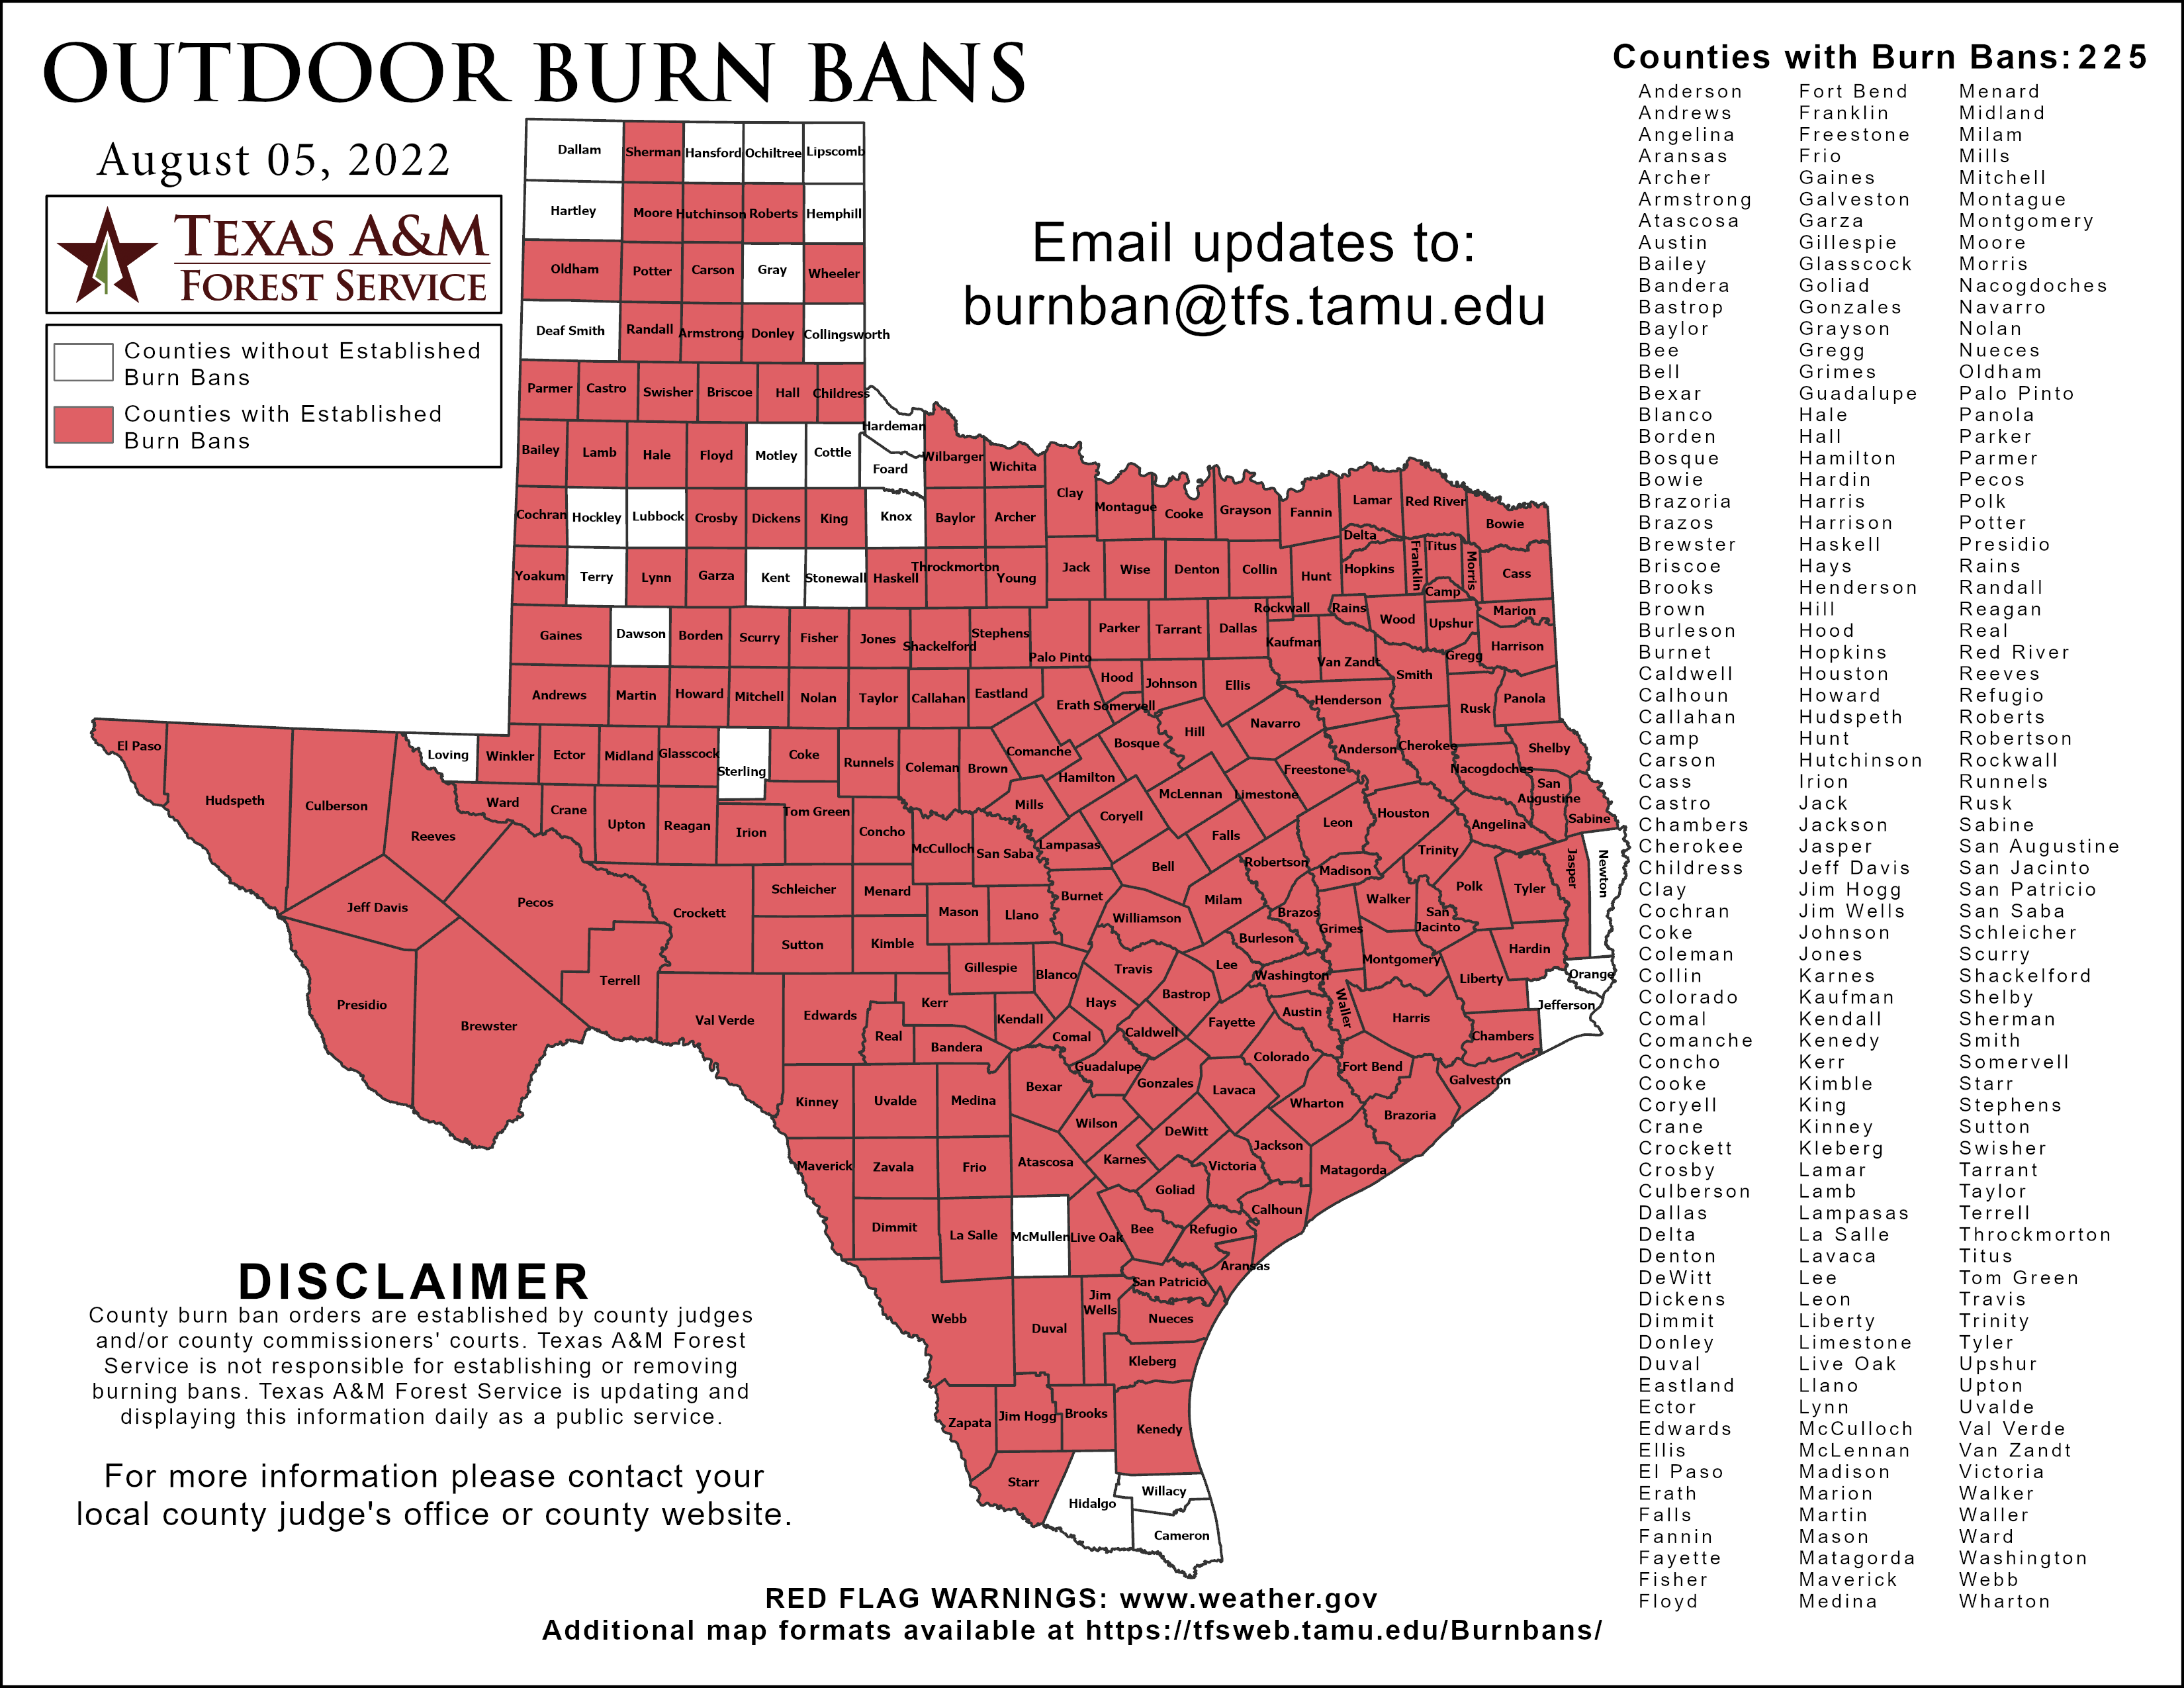 Map of Texas Counties.  Highlighted in red are those counties under an Outdoor Burn Bans